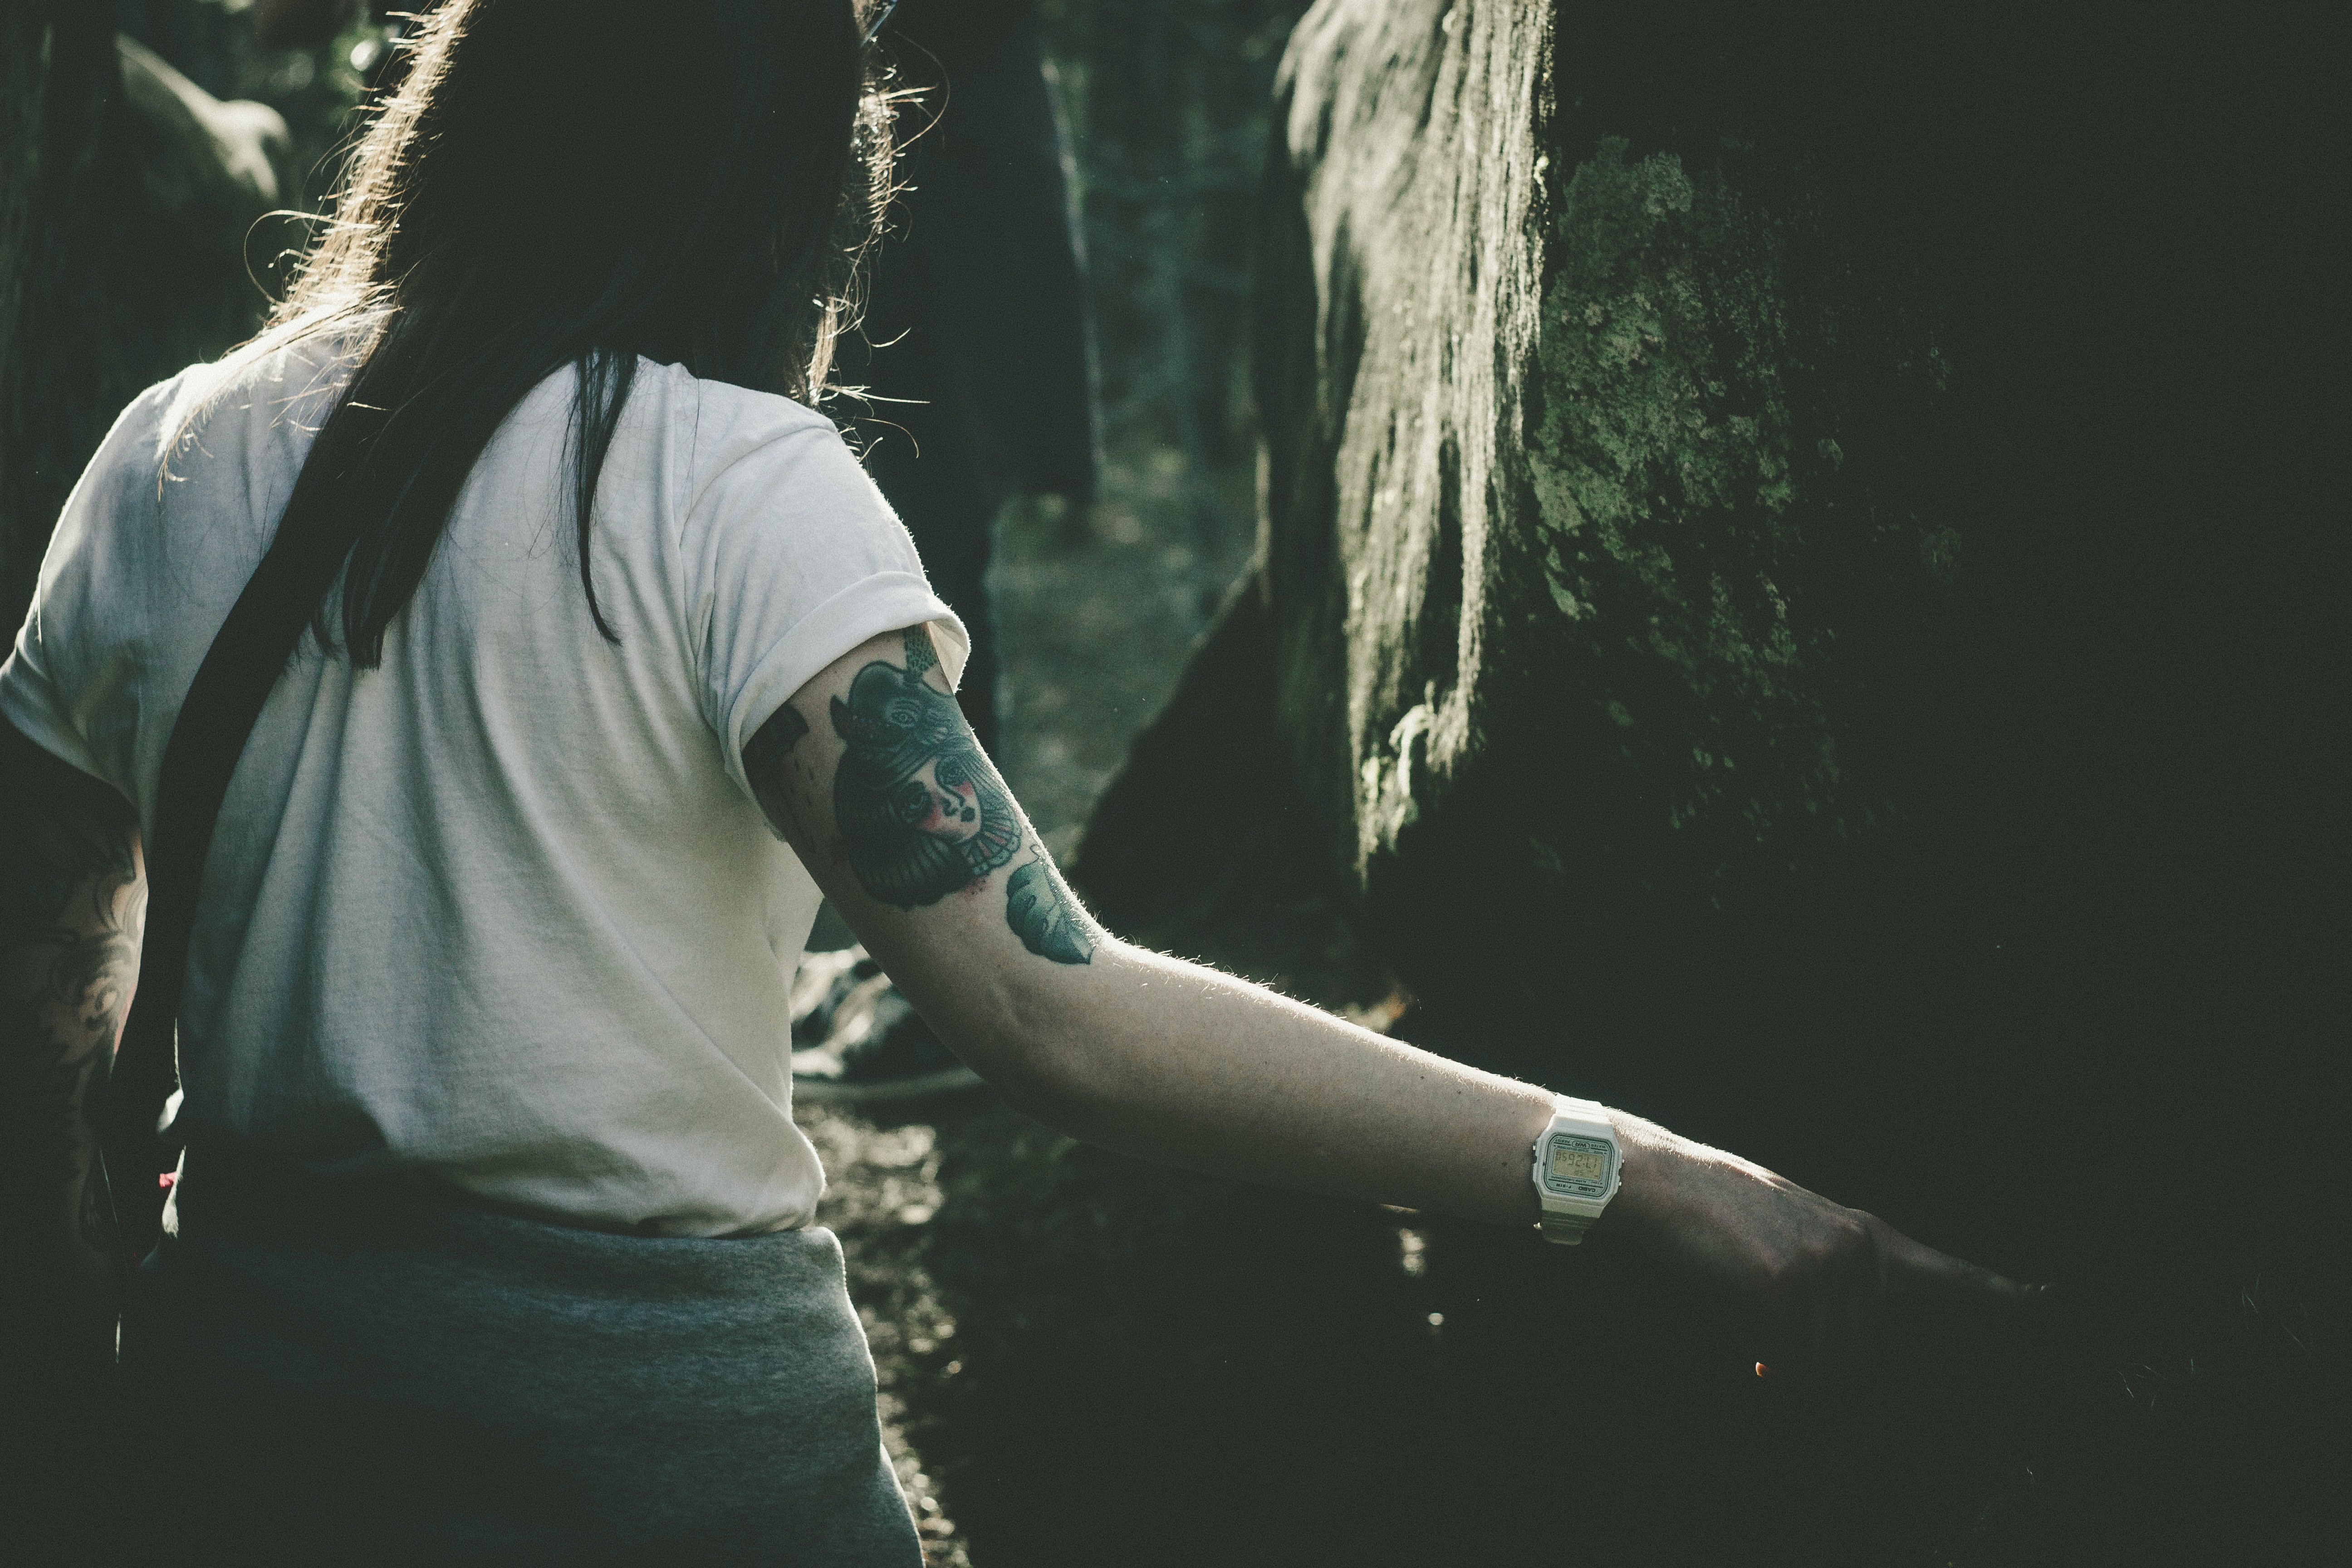 Woman with various tattoos on her arms walking through the forest of Dovbush Rocks